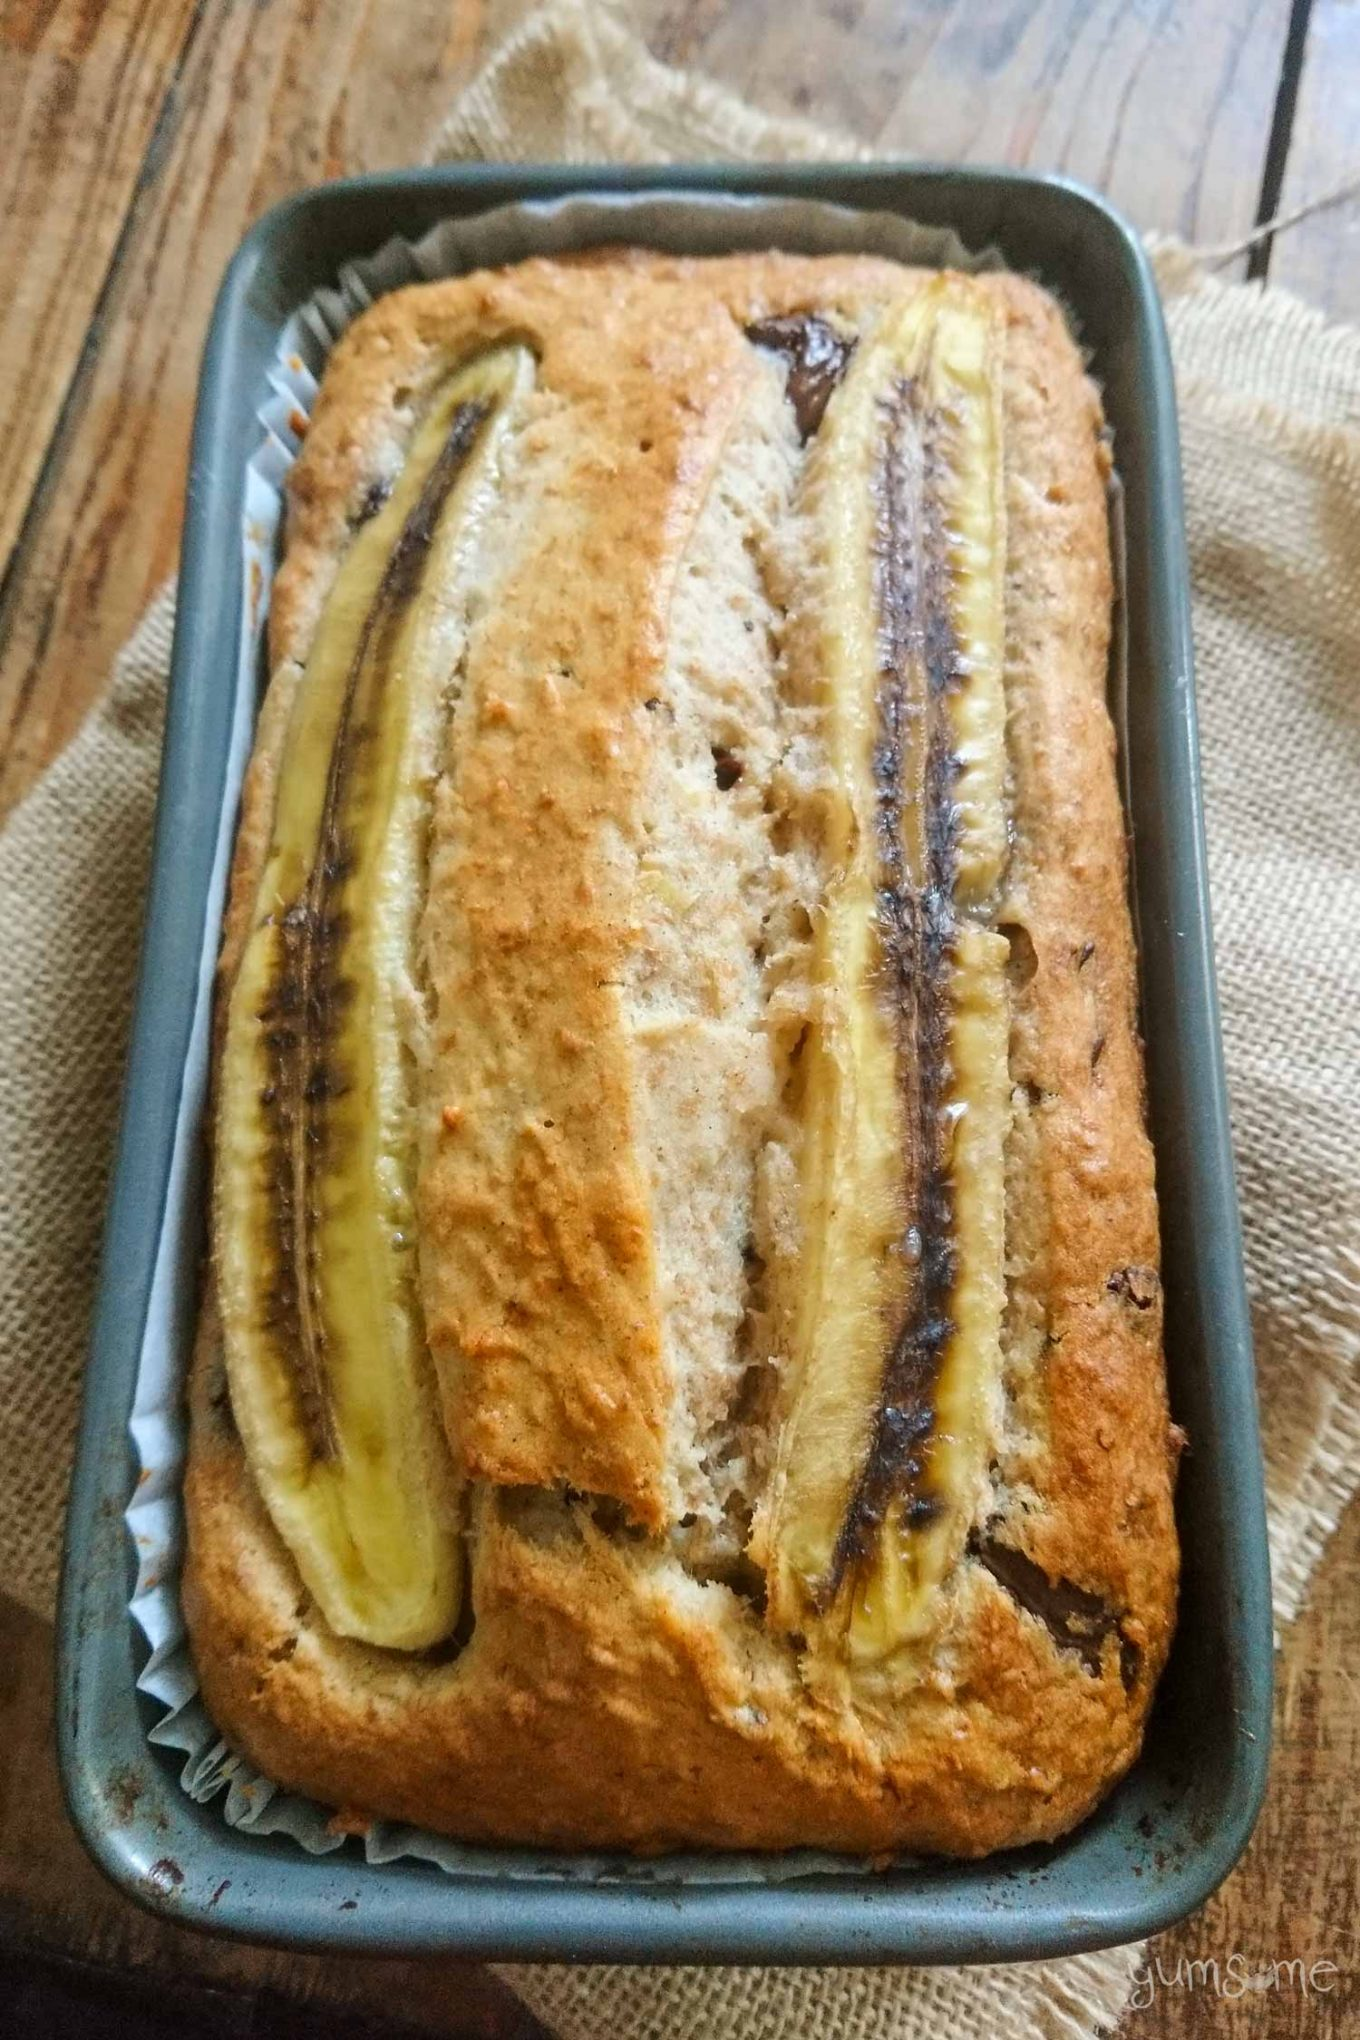 Chocolate chip banana bread in a loaf pan, with sliced banana on top.